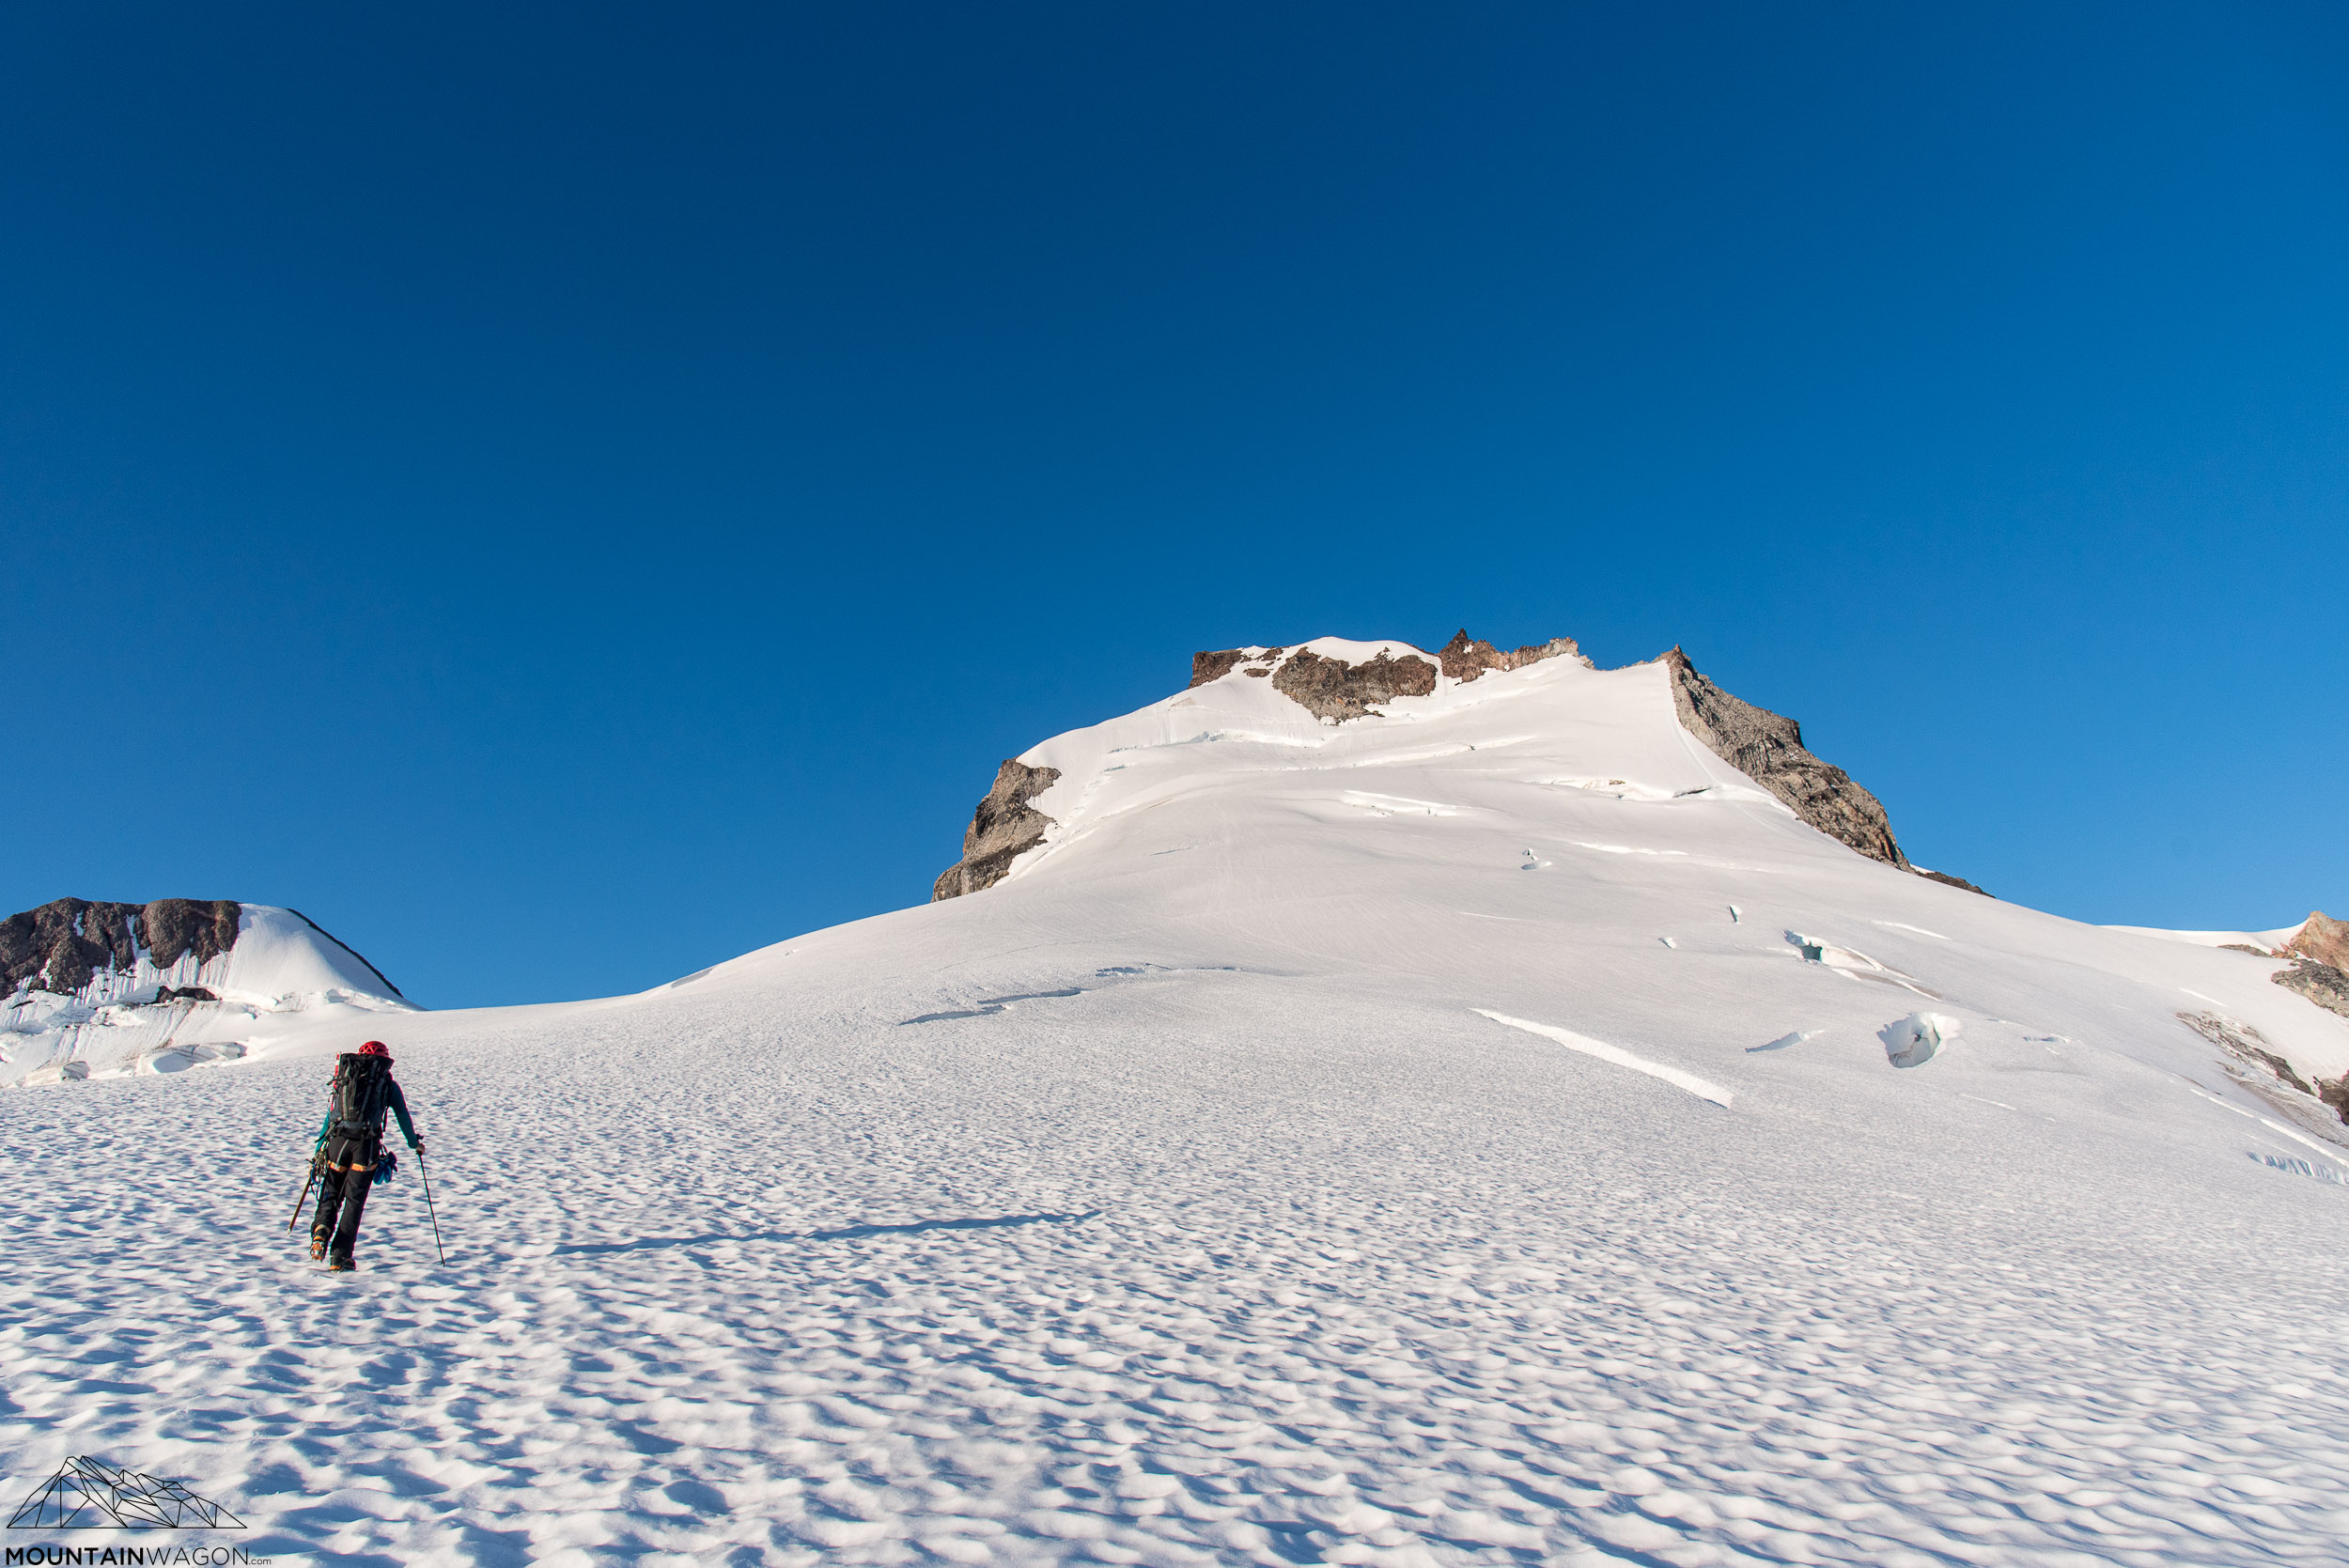 Approaching the crevasse field.